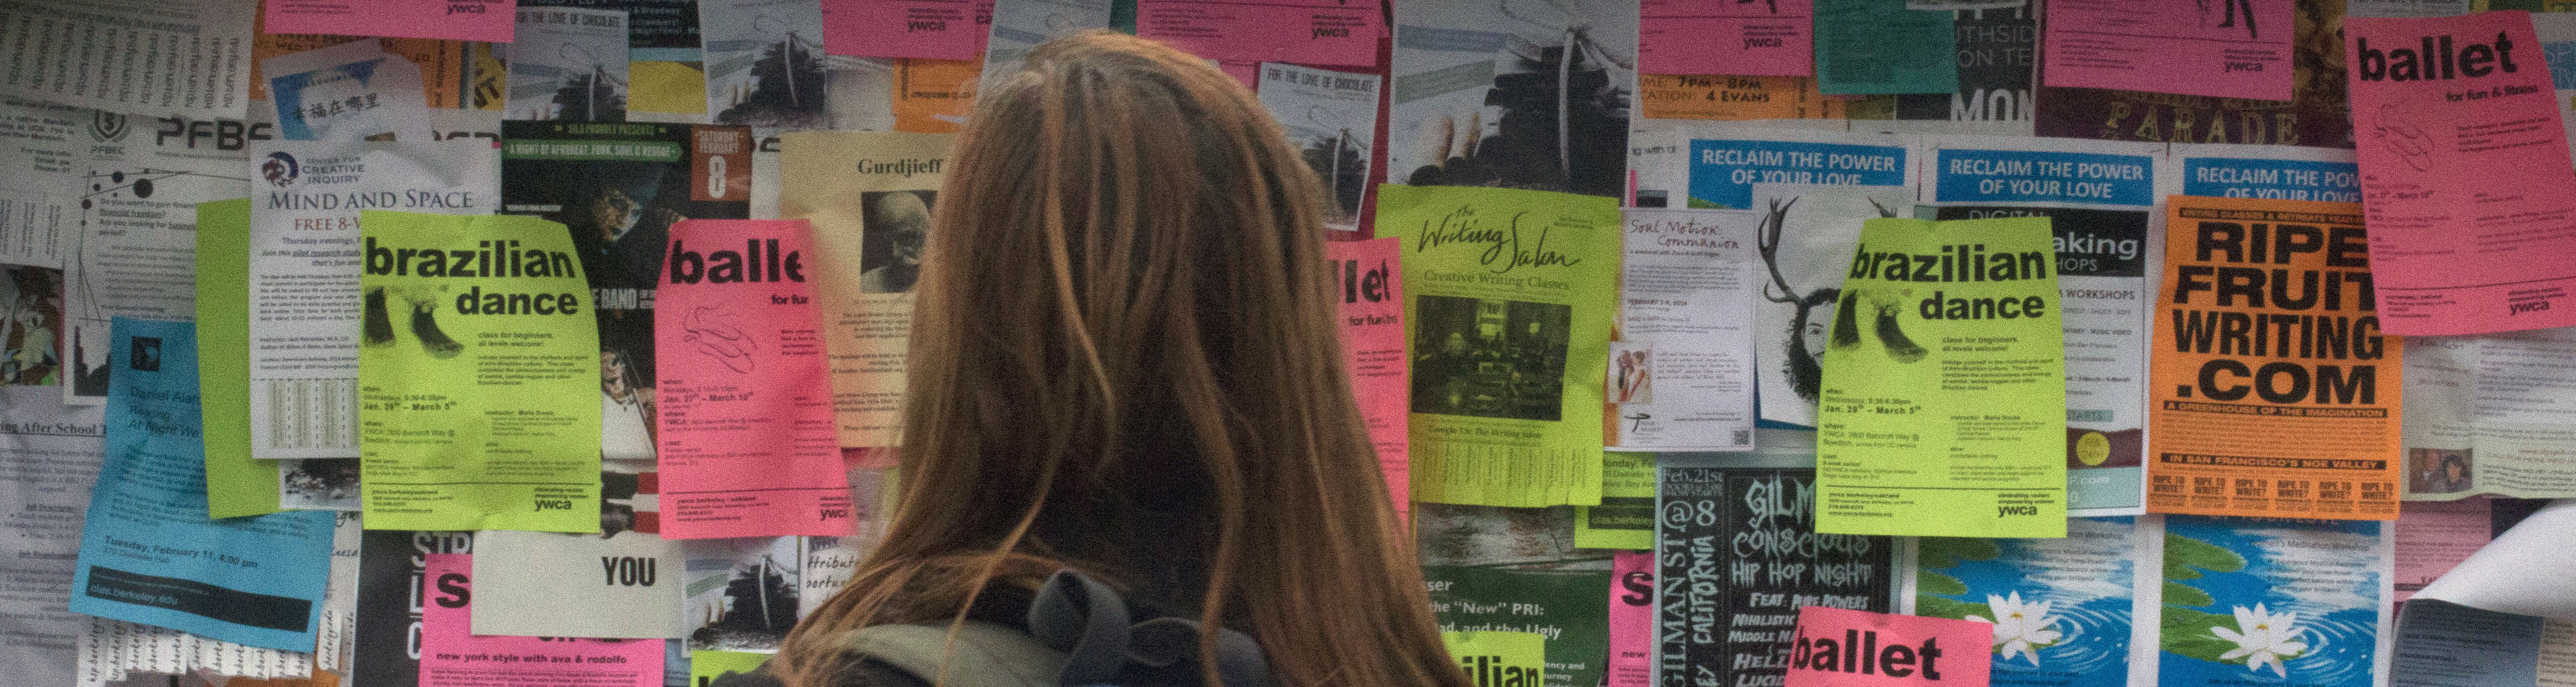 Student looking at fliers on Sproul Plaza.